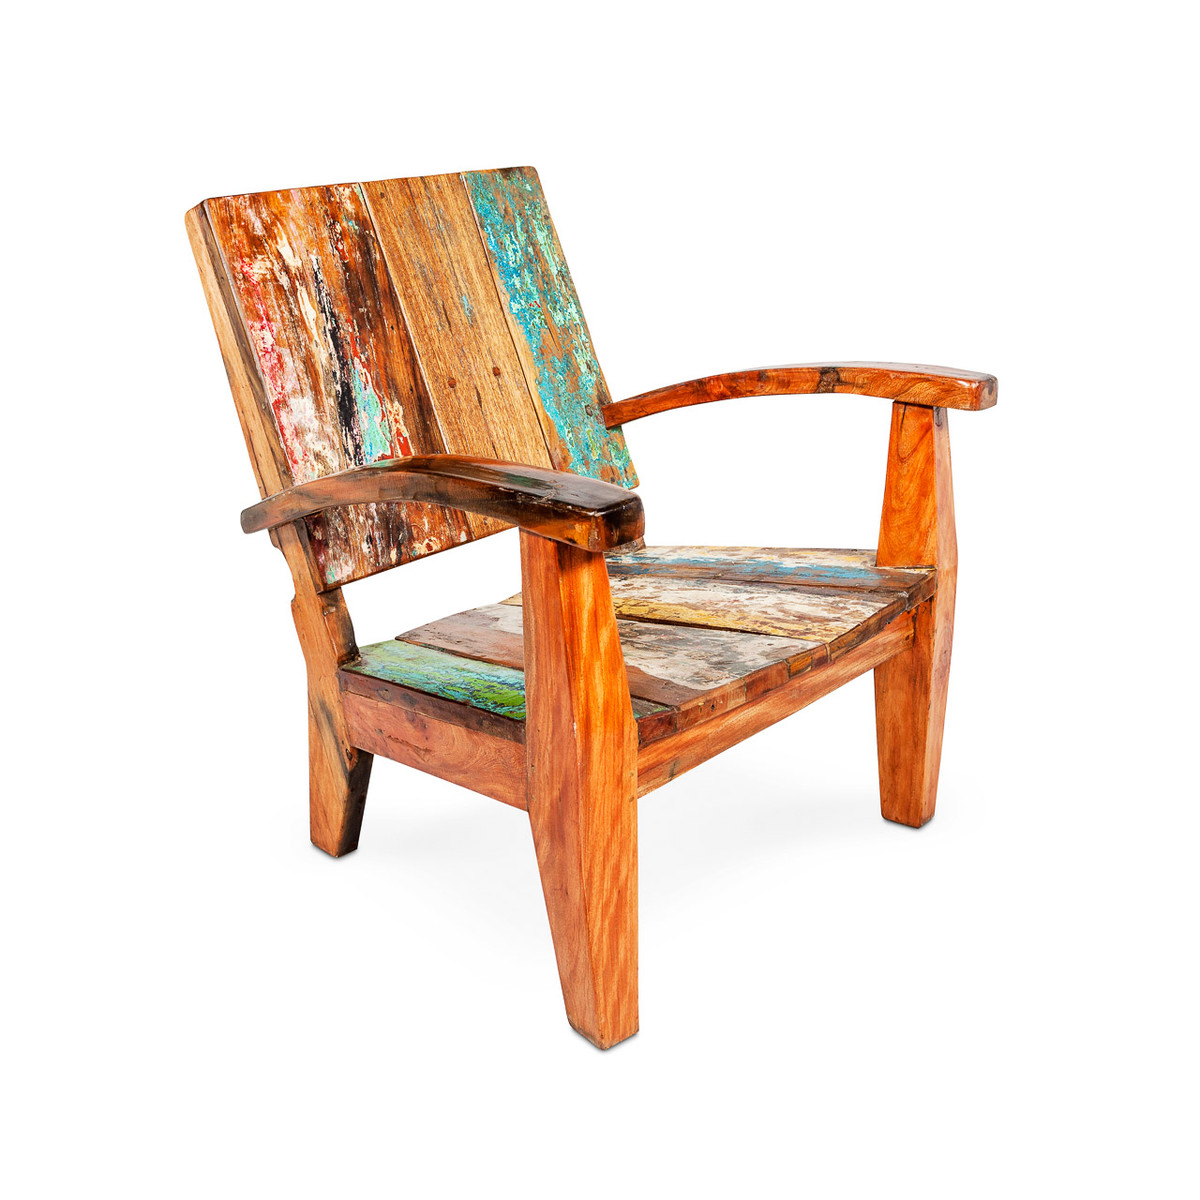 Large Deck Chair Boat Timber Teak